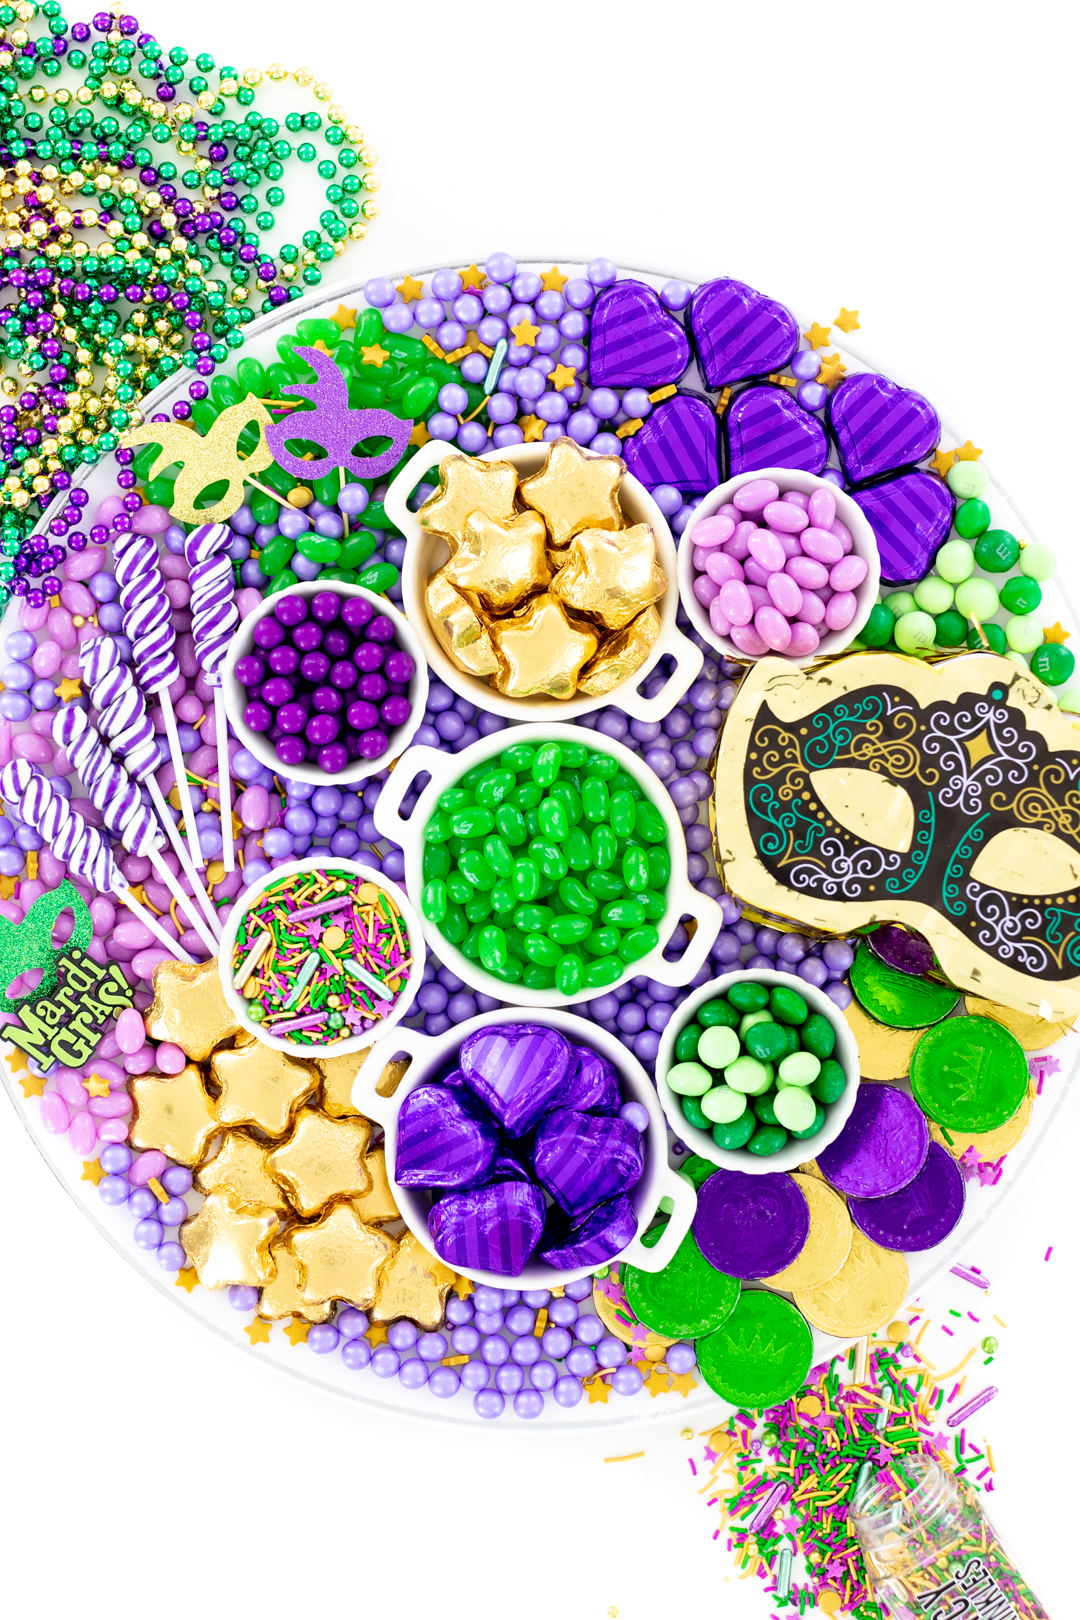 mardi gras candy charcuterie board made with green, purple and gold candies.